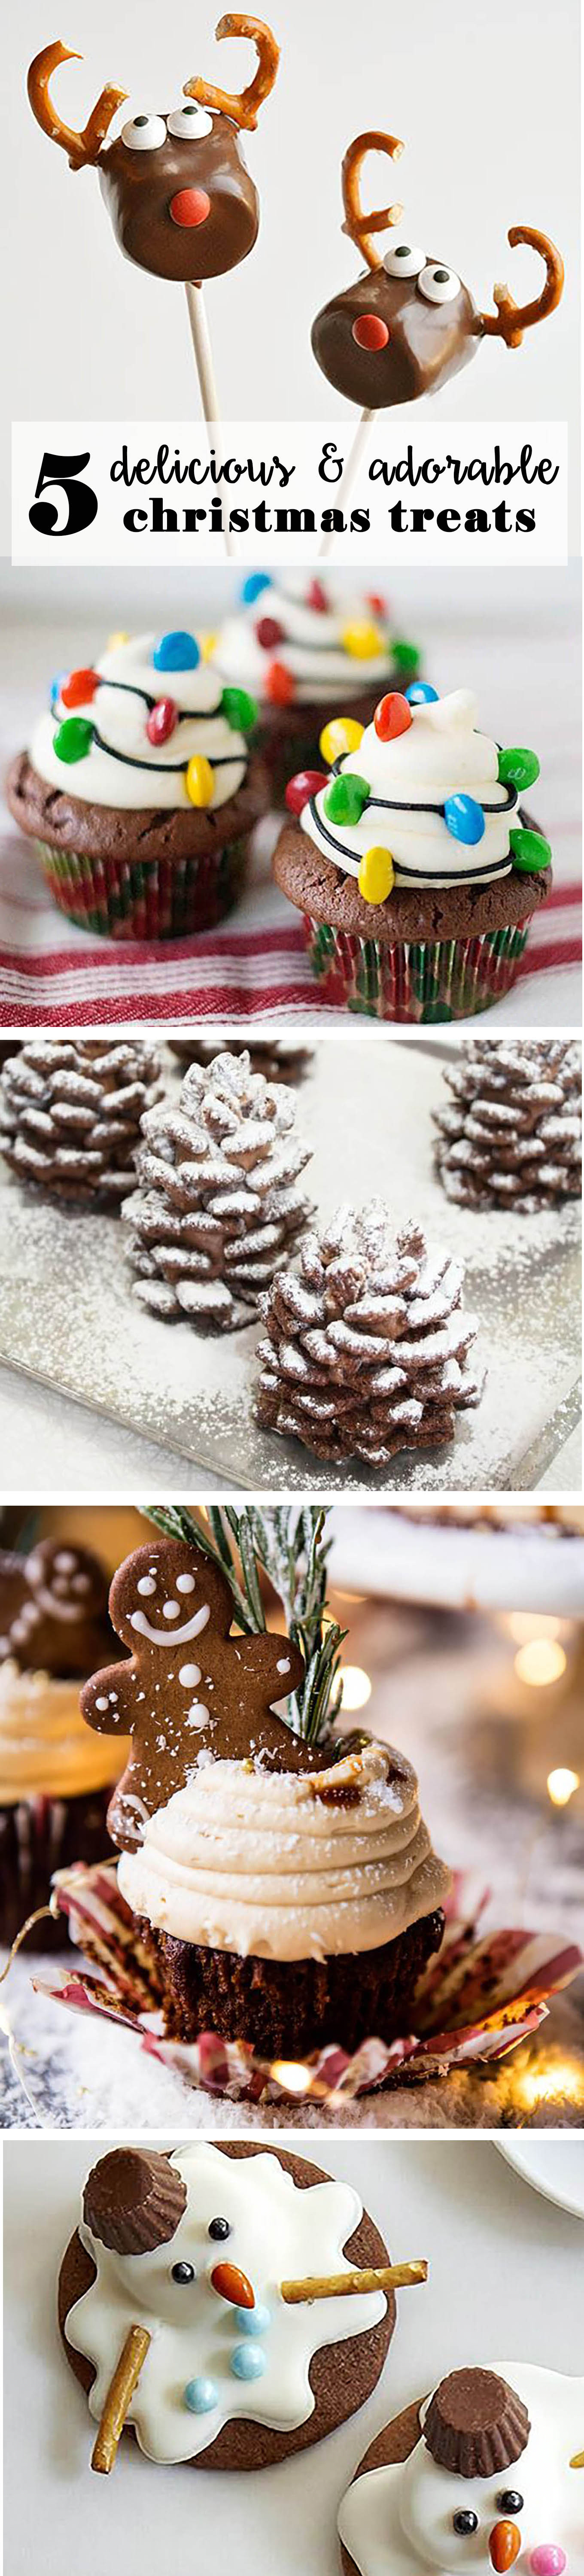 delicious and adorable christmas treats